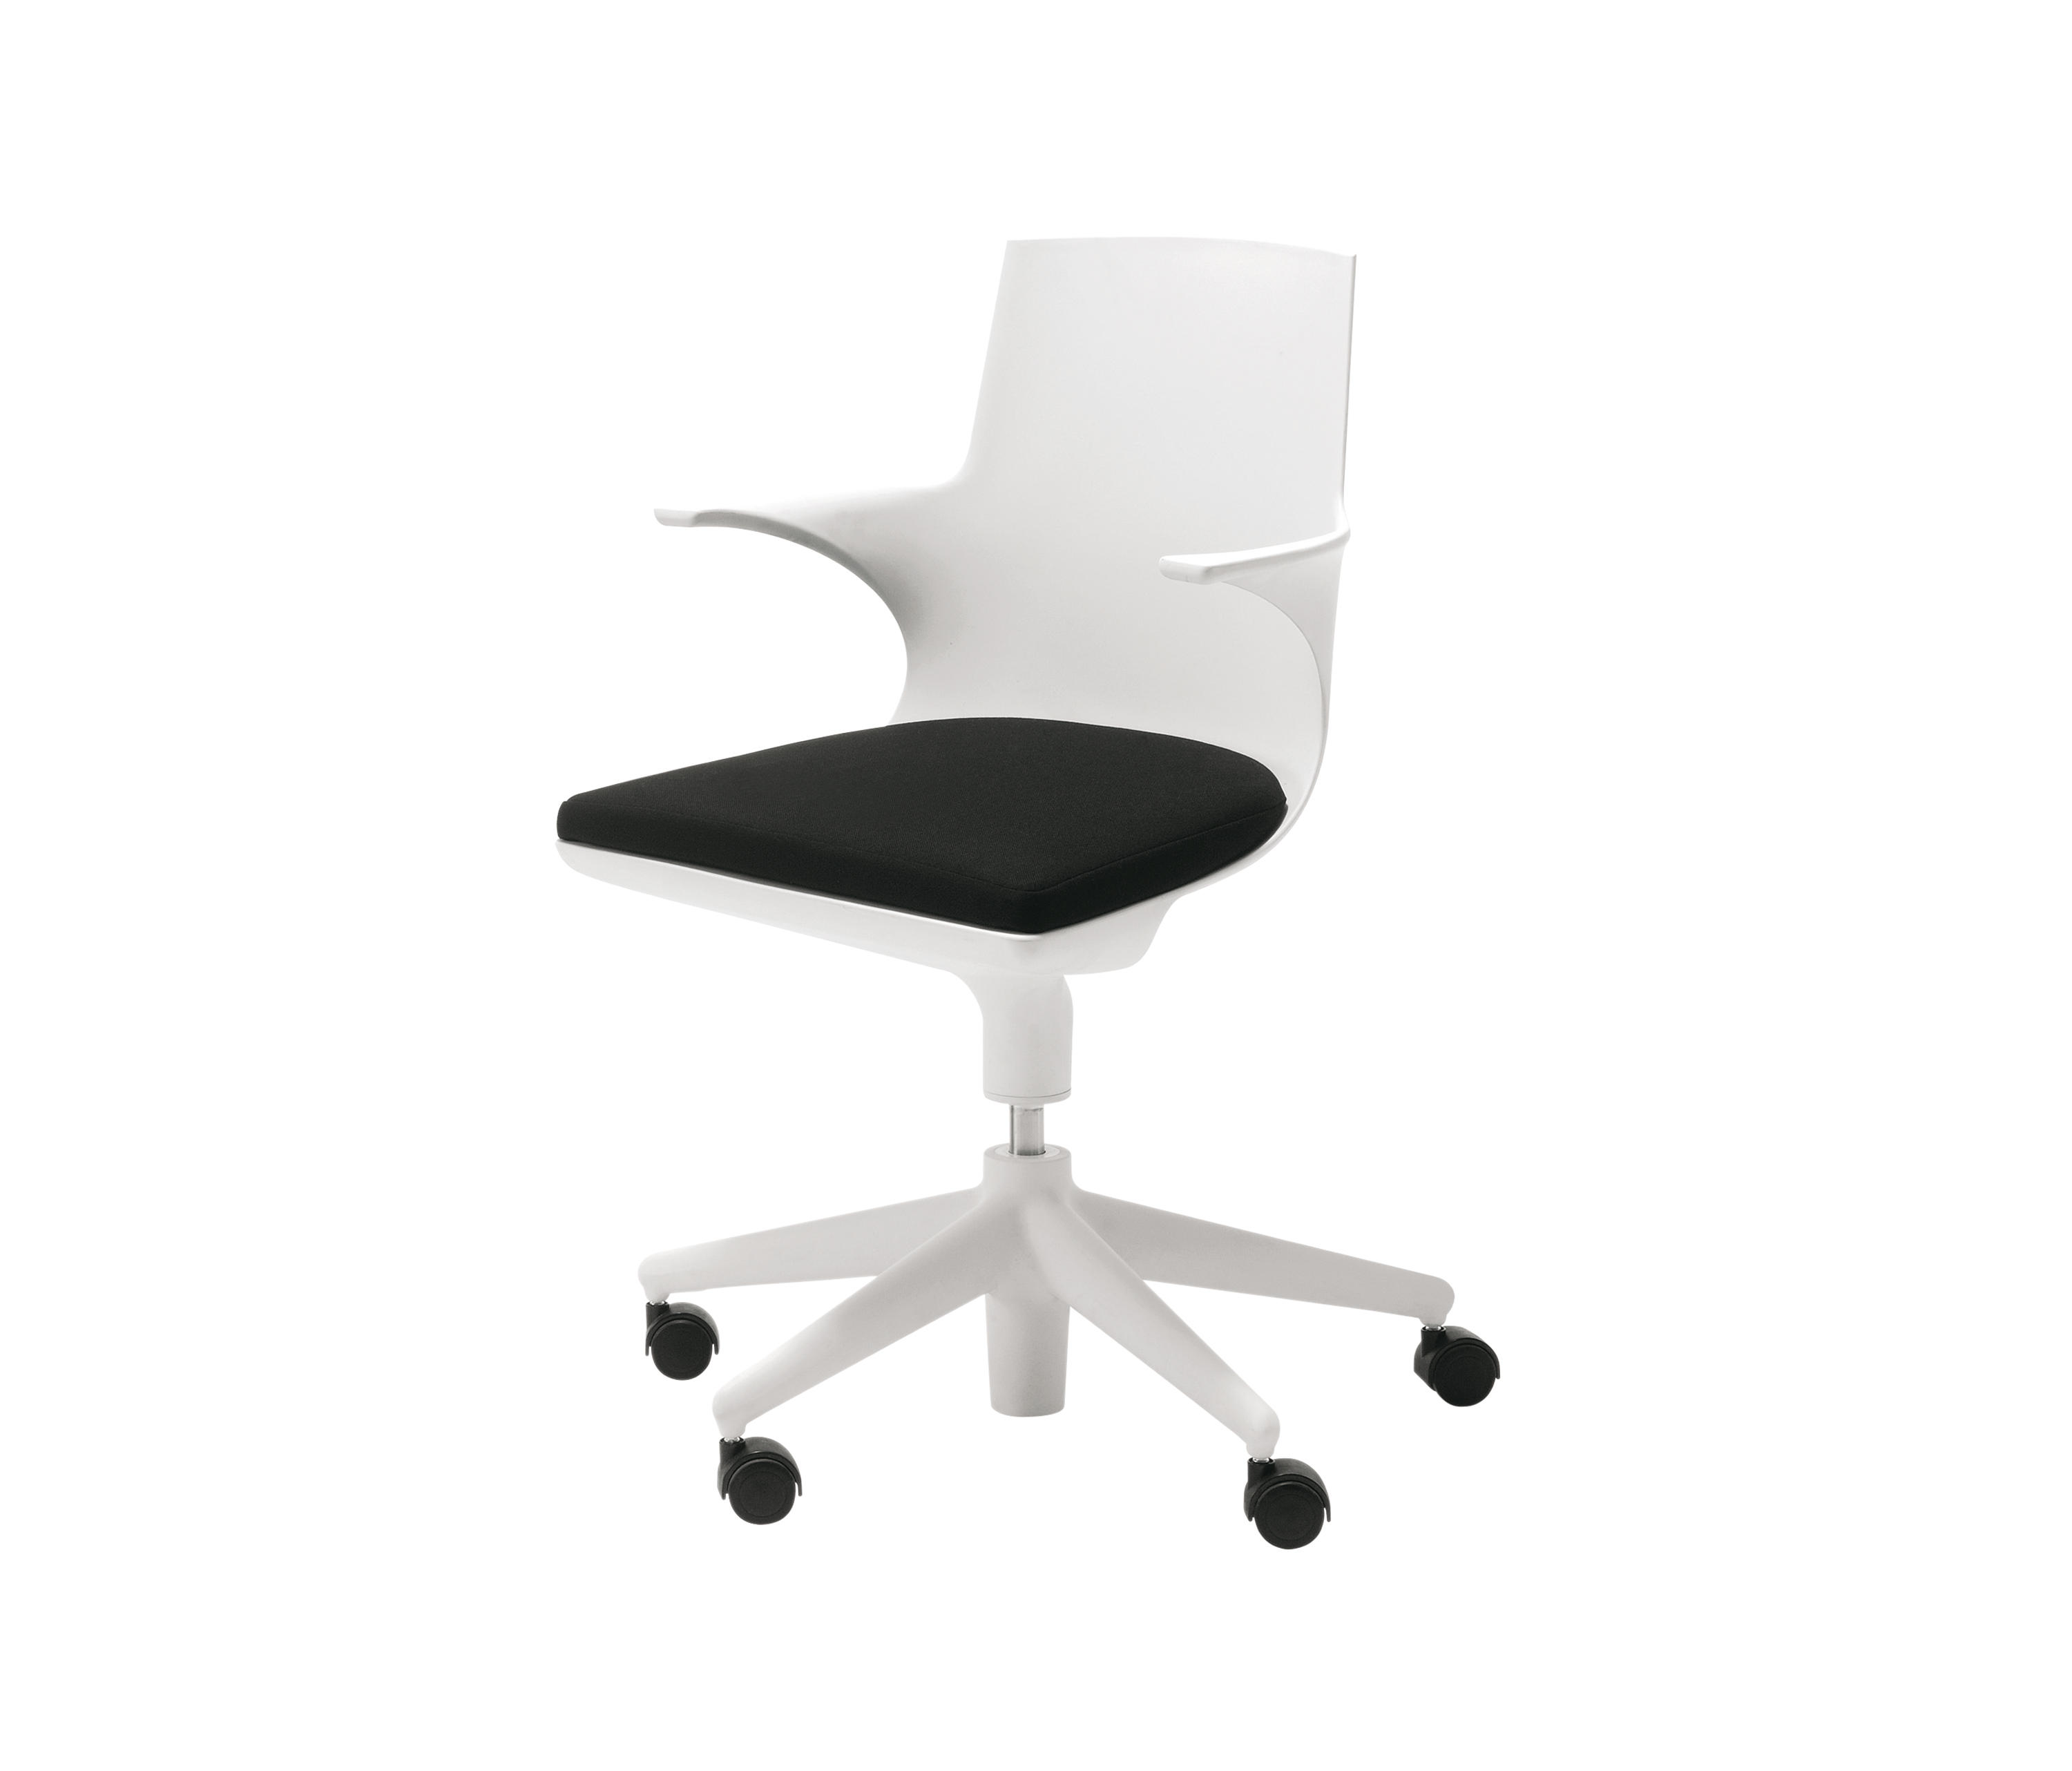 Spoon chair by kartell chairs